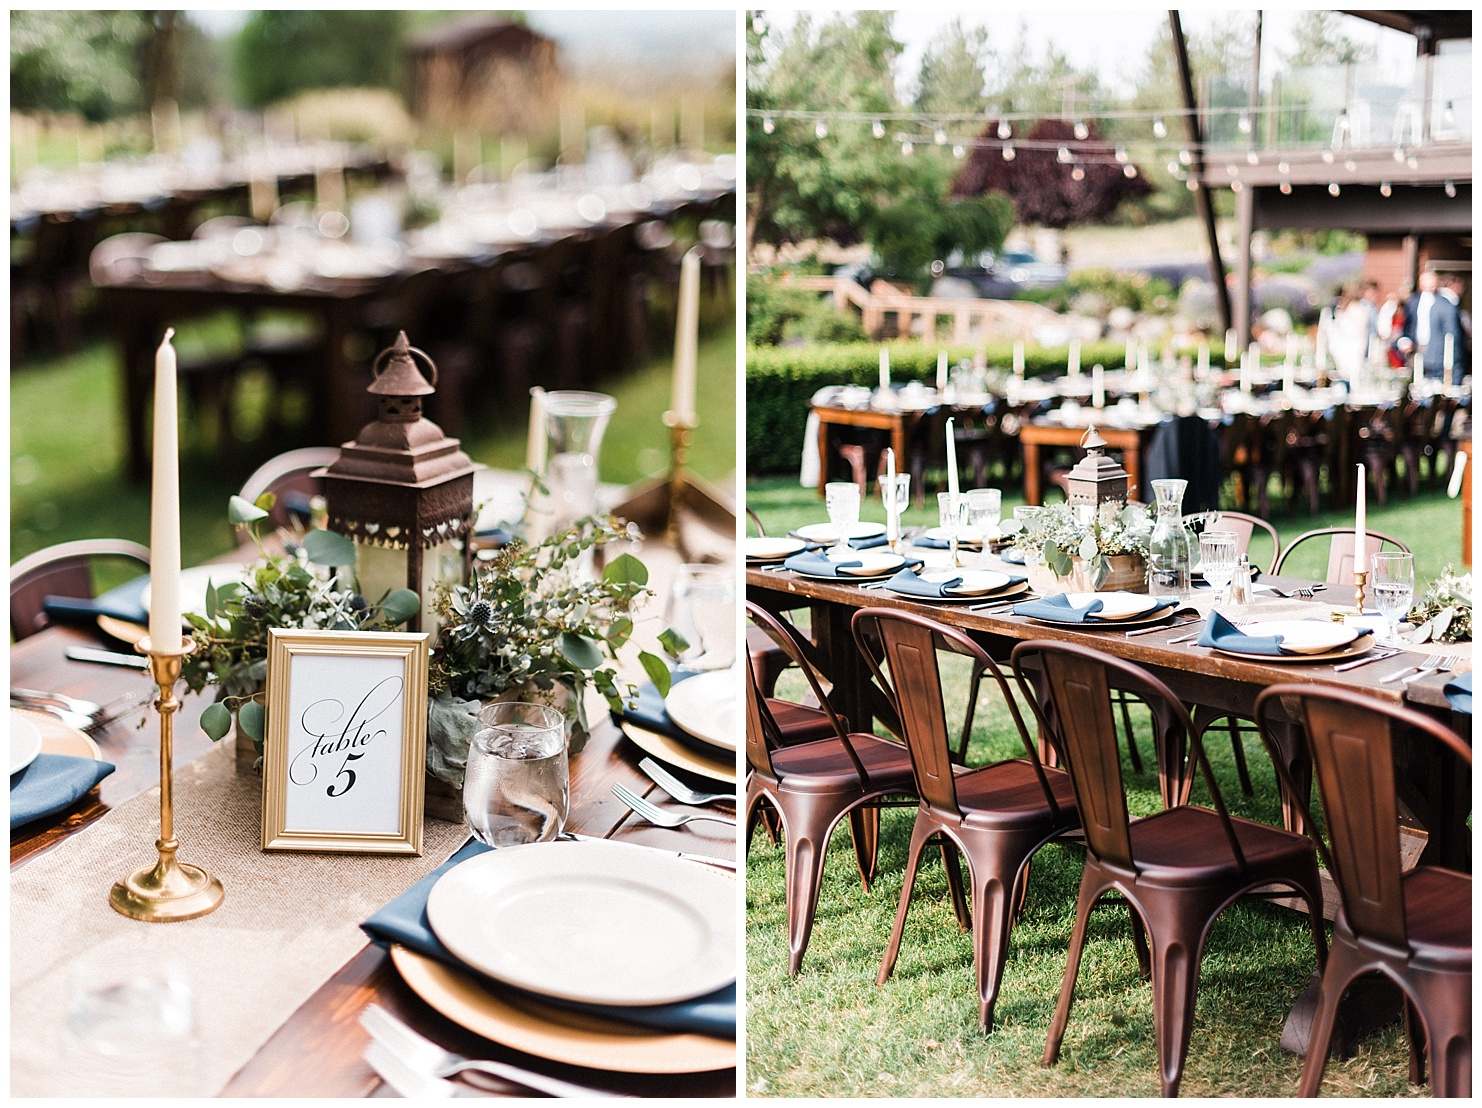 Photos of wedding reception tables and details at Beacon Hill in Spokane, Washington by Forthright Photo